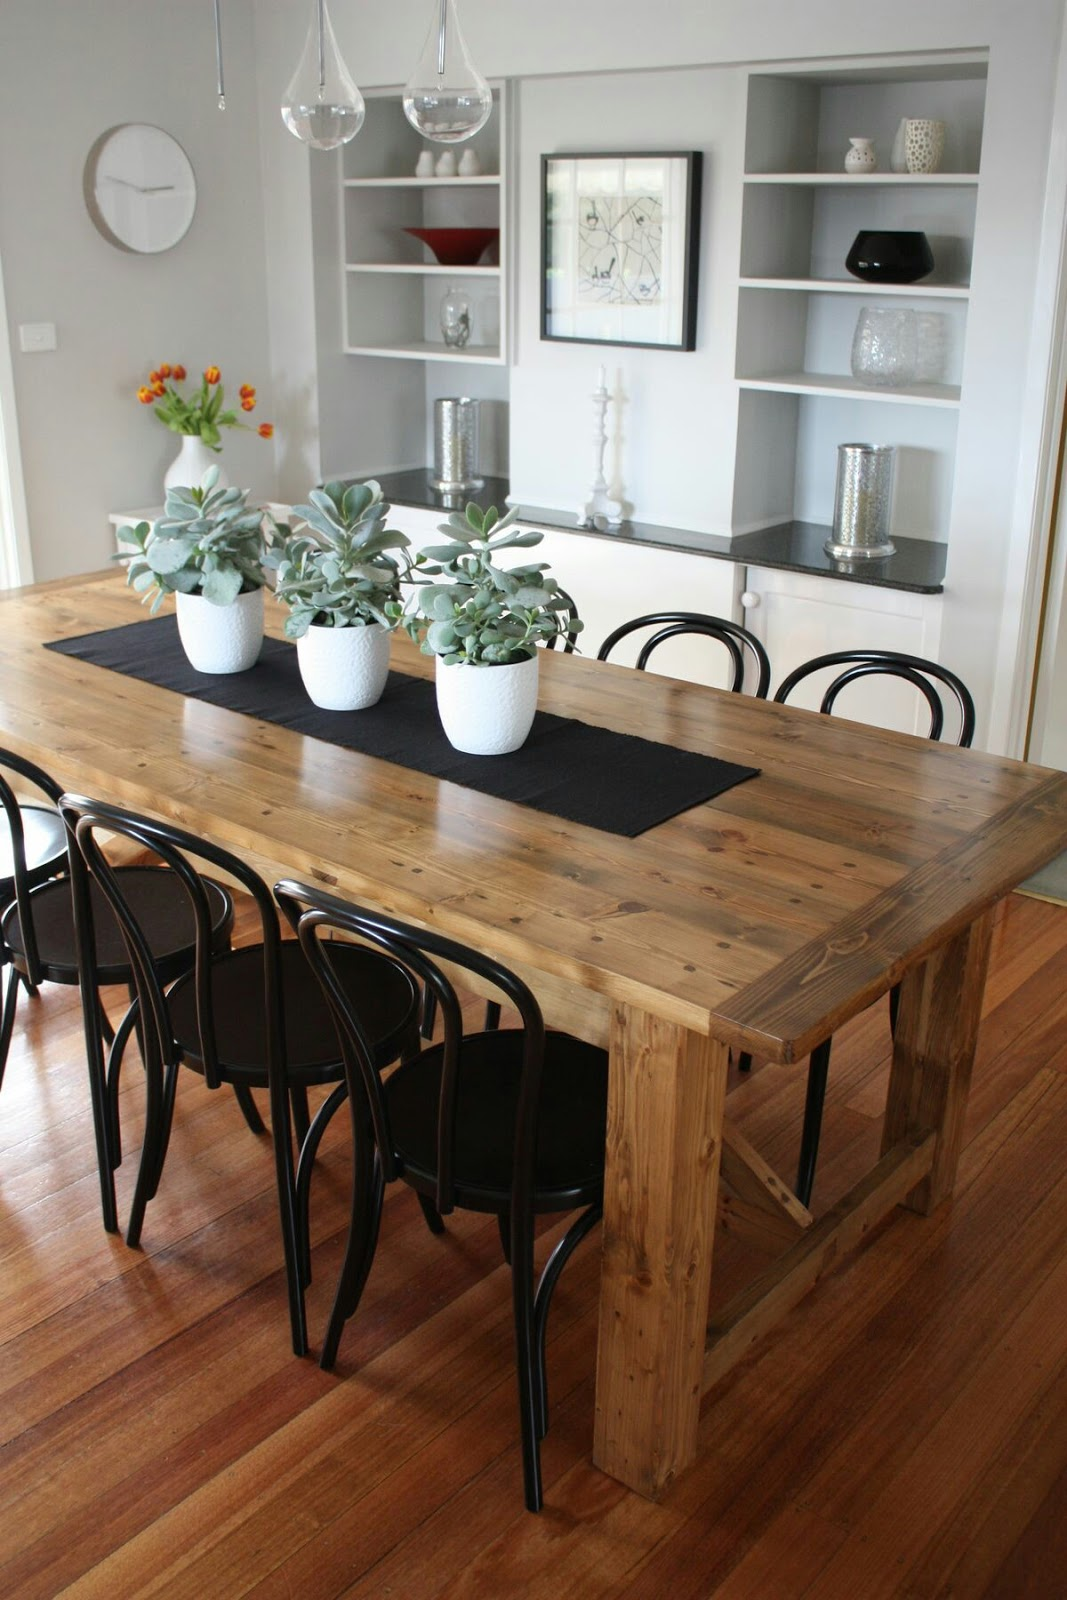 Are you looking for unique wood table design? Explore all the images of unique wood table design below to get you inspired.